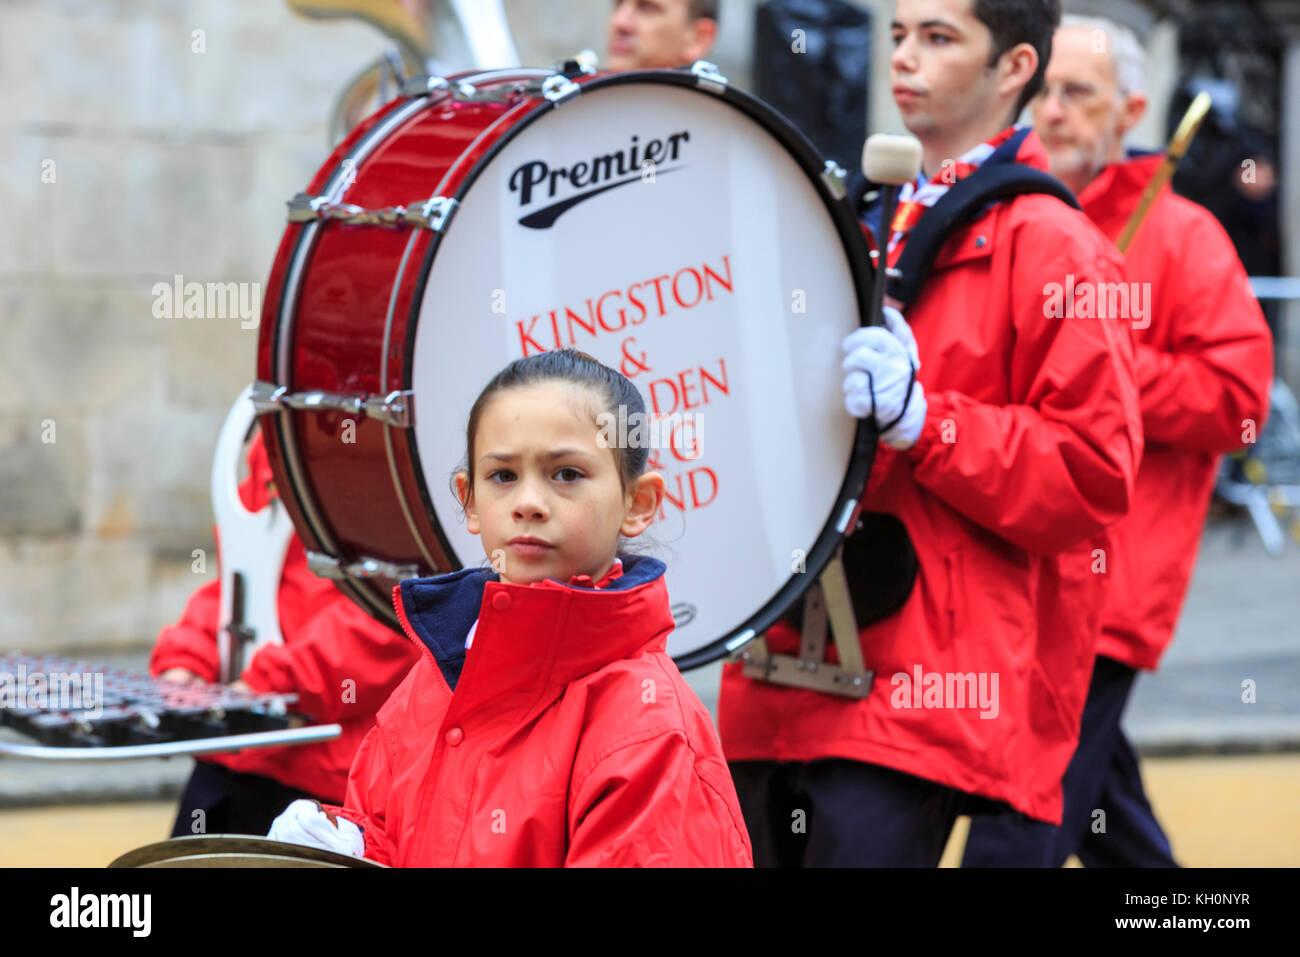 City of London, UK. 11th Nov, 2017. The 2017 Lord Mayor's Parade, an 800 year old custom, sees the traditional - Stock Image